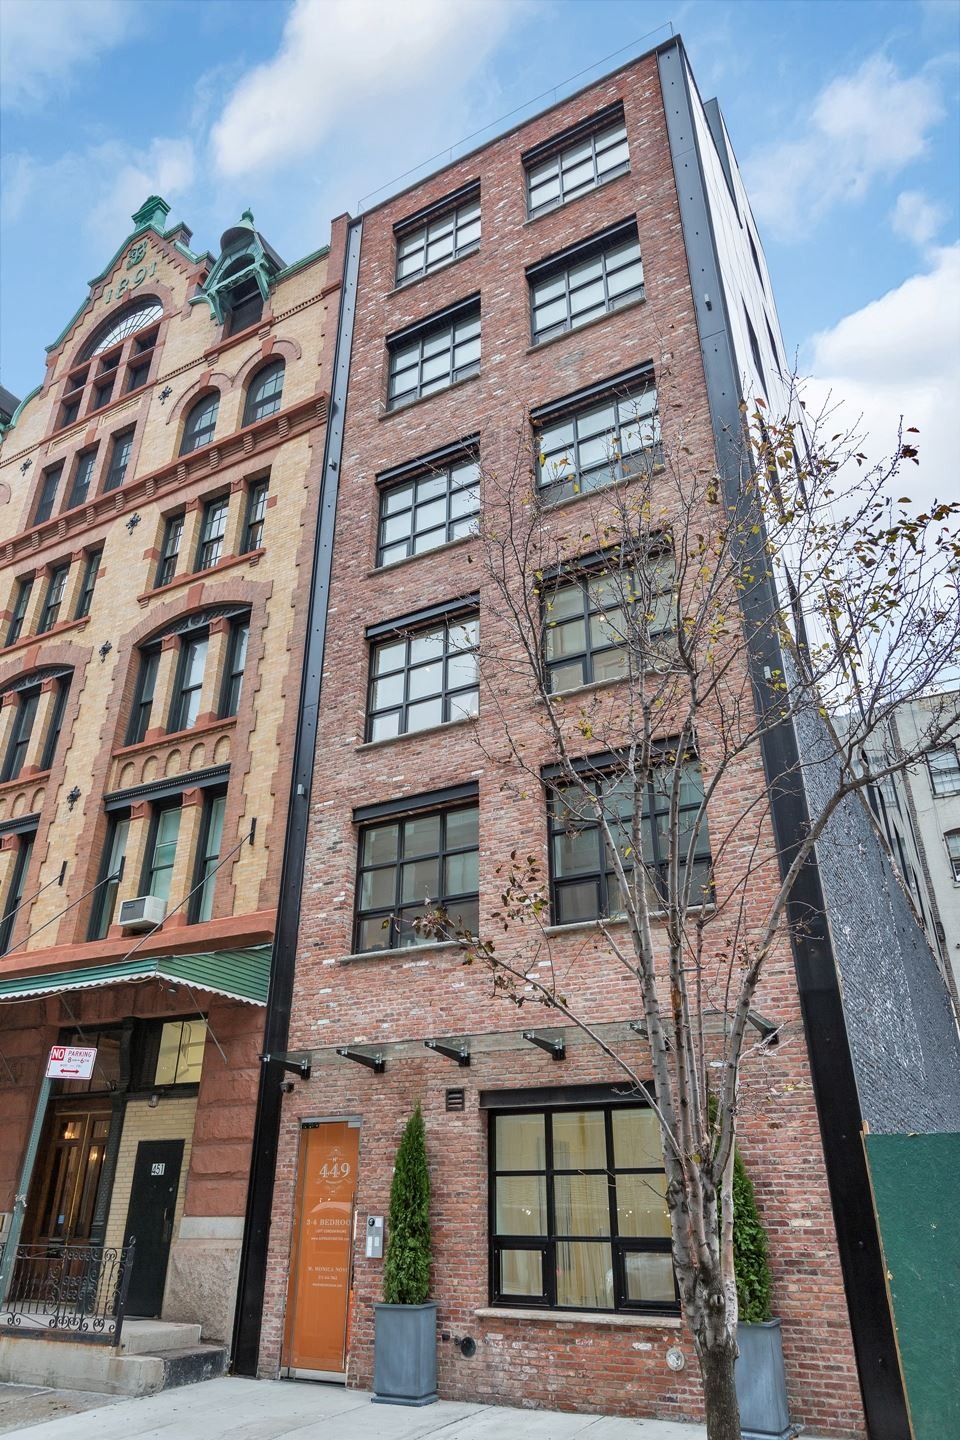 Corcoran 449 washington st apt 1 tribeca real estate for Tribeca property for sale